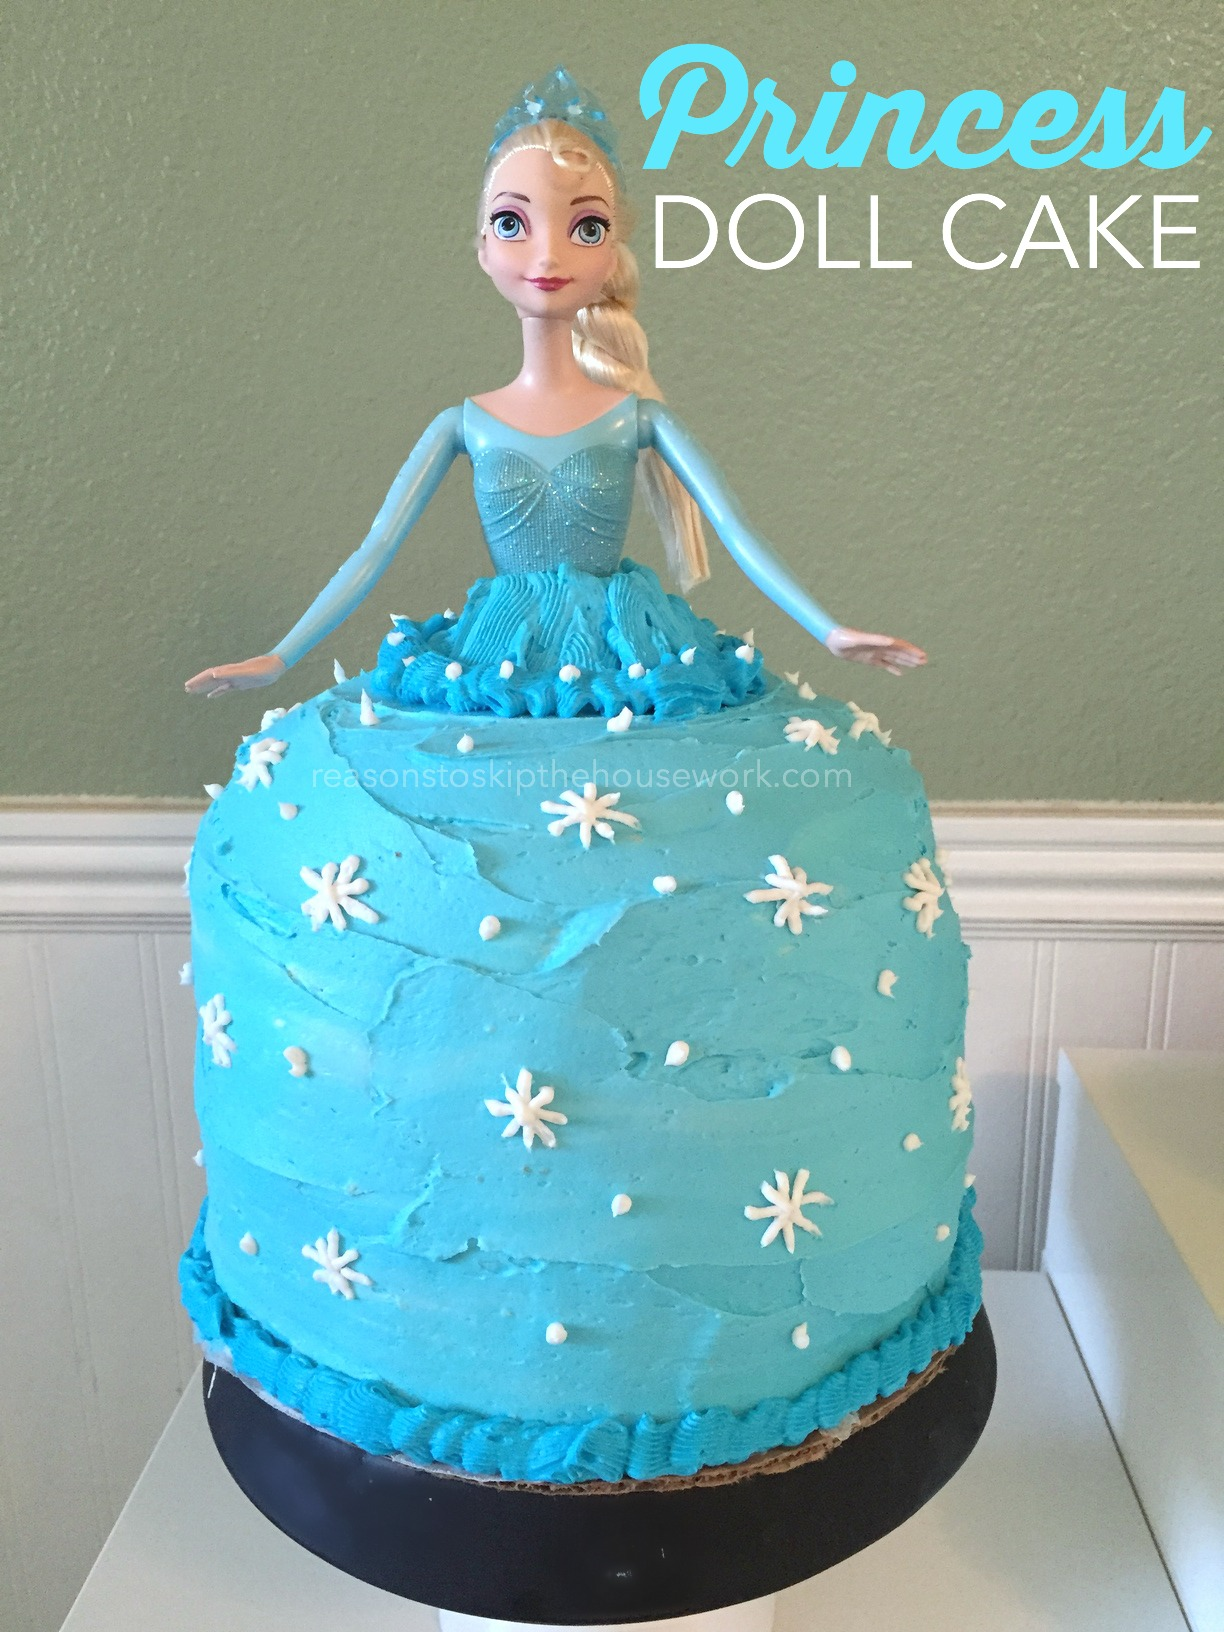 Princess Doll Cake Pictures : Princess Doll Cake - REASONS TO SKIP THE HOUSEWORK